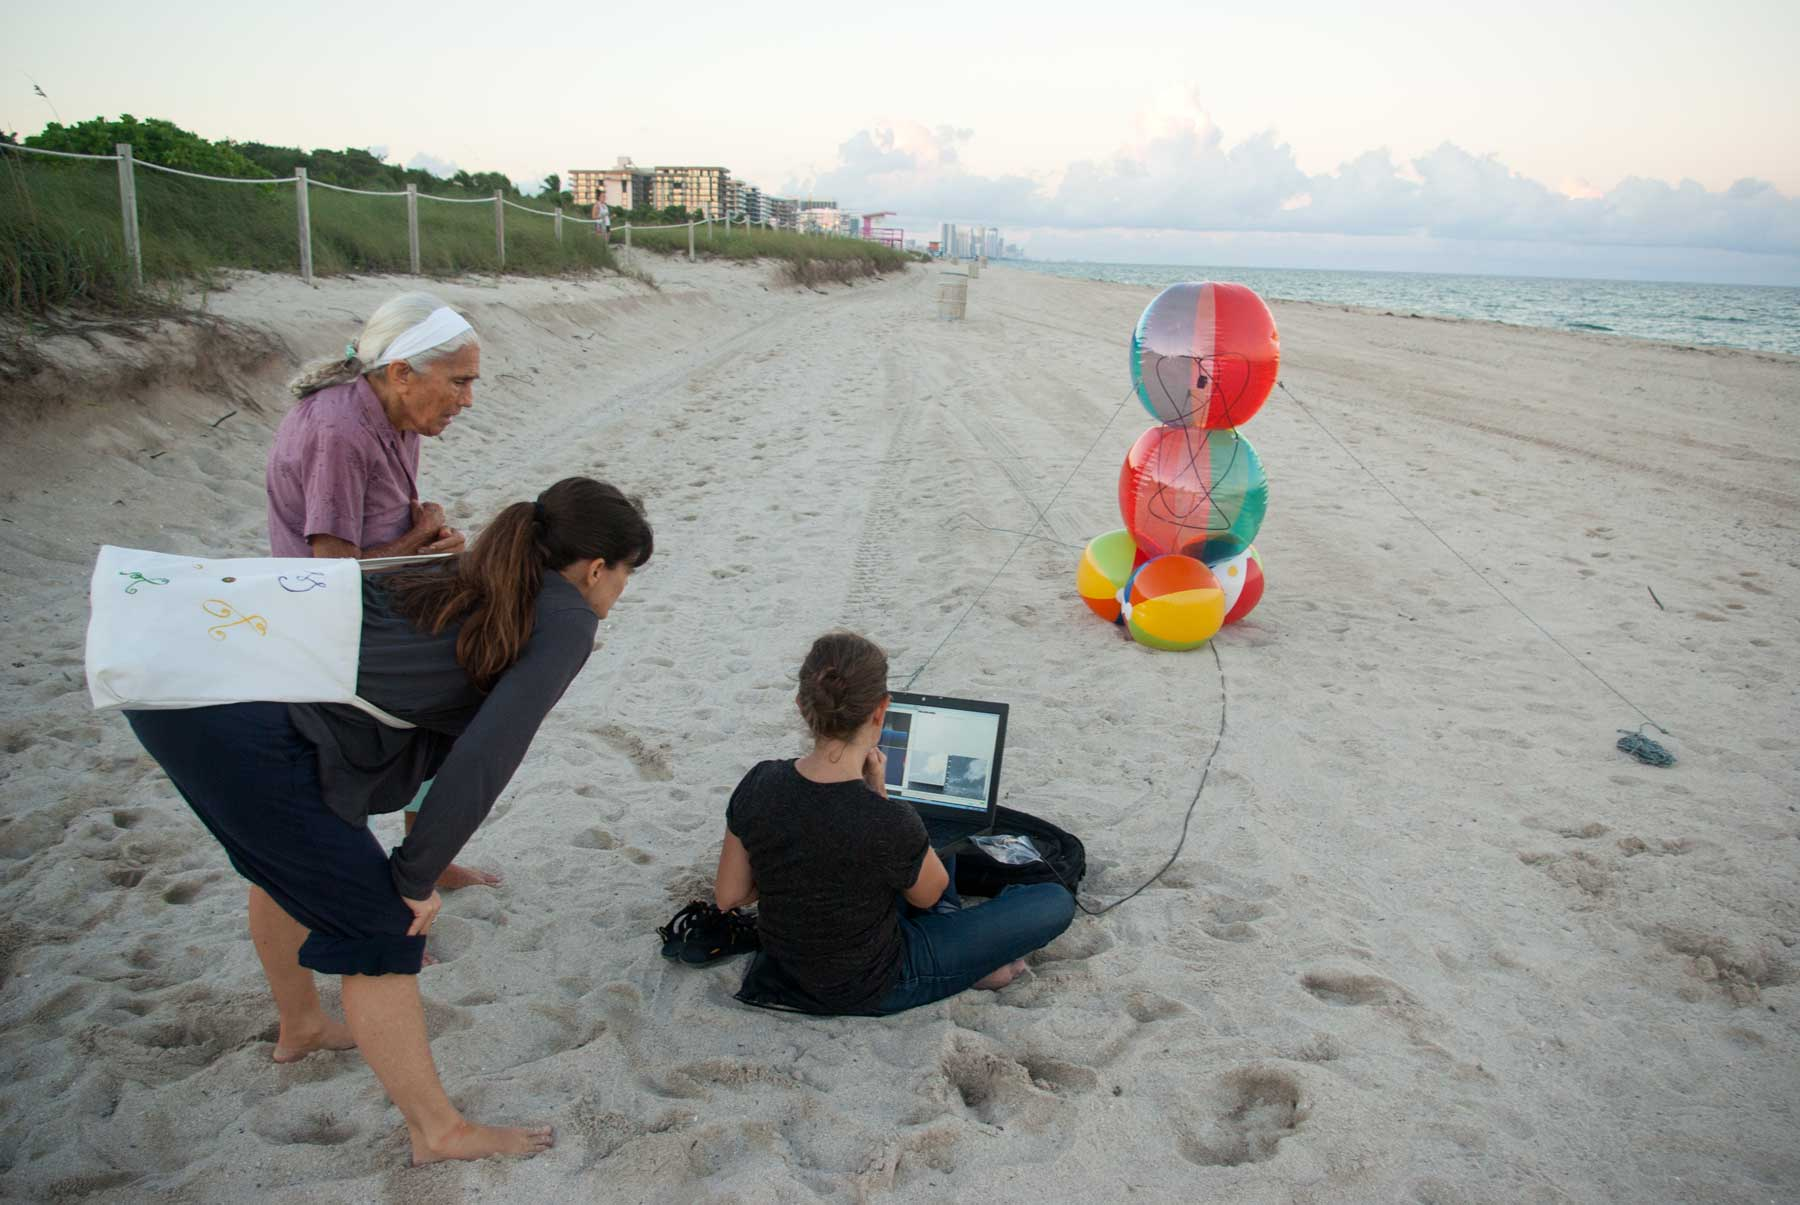 Beach ball on beach Pink If Beach Visitors Were Passing By At The Same Time As Satellite They Could View Images Of The Earth Being Received Using The Beachball Antenna Pinterest Beachball Antennas Heidi Neilson